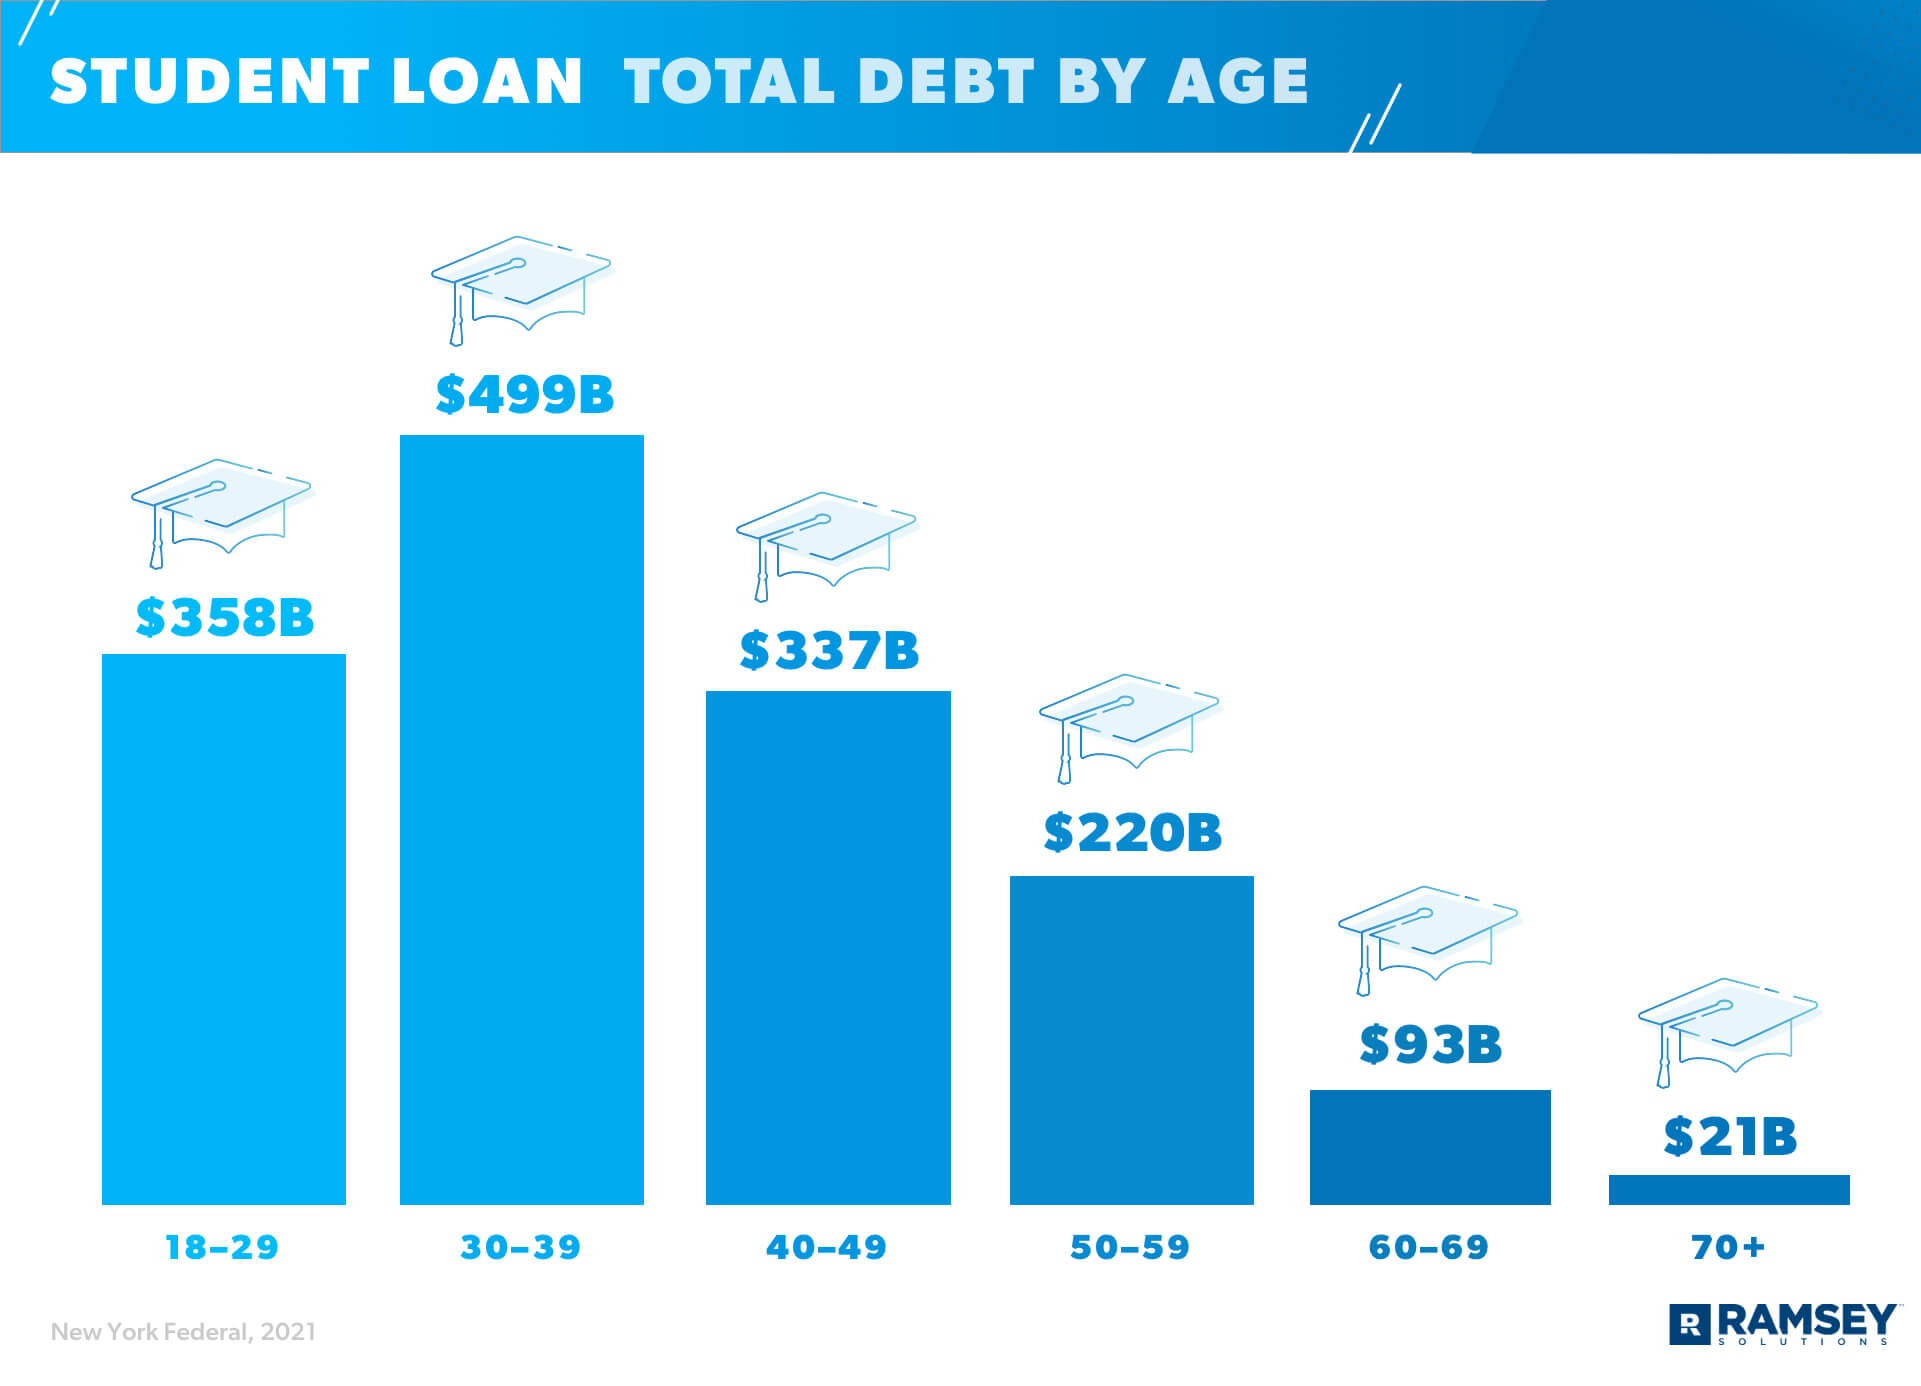 Student Loan Total Debt By Age